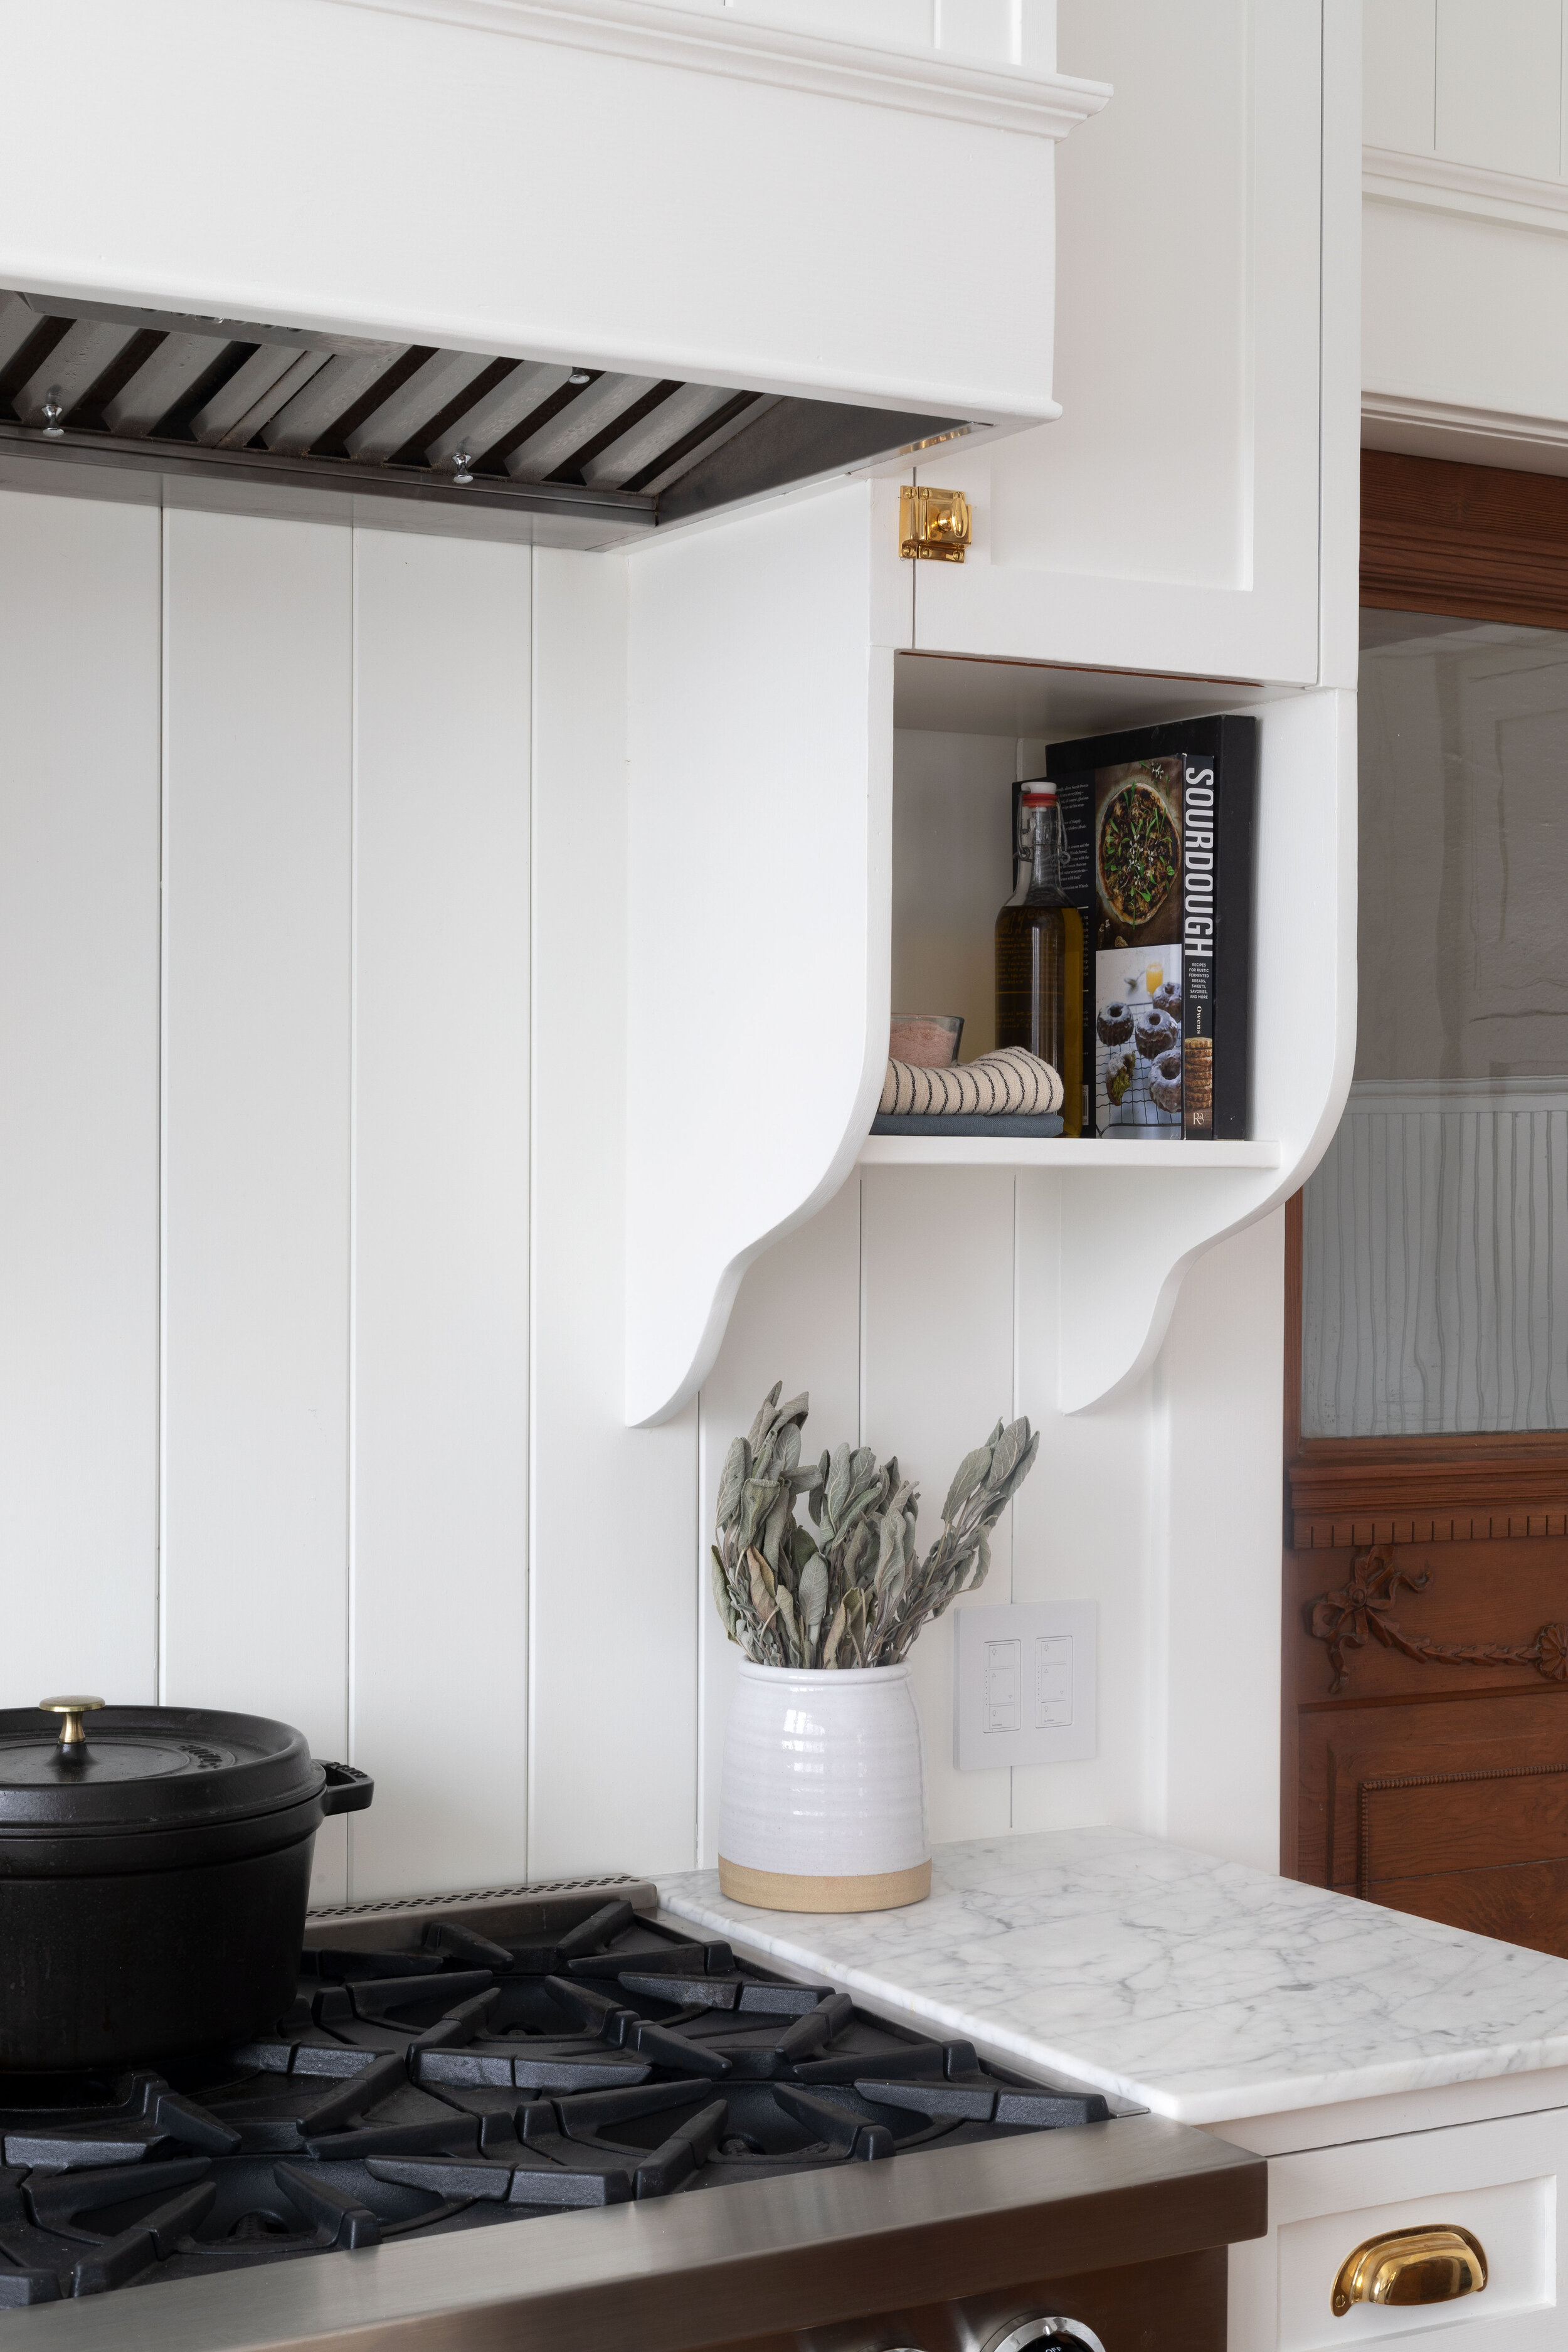 The Grit and Polish - Farmhouse Country Kitchen Reveal 3.0 25 web.jpg